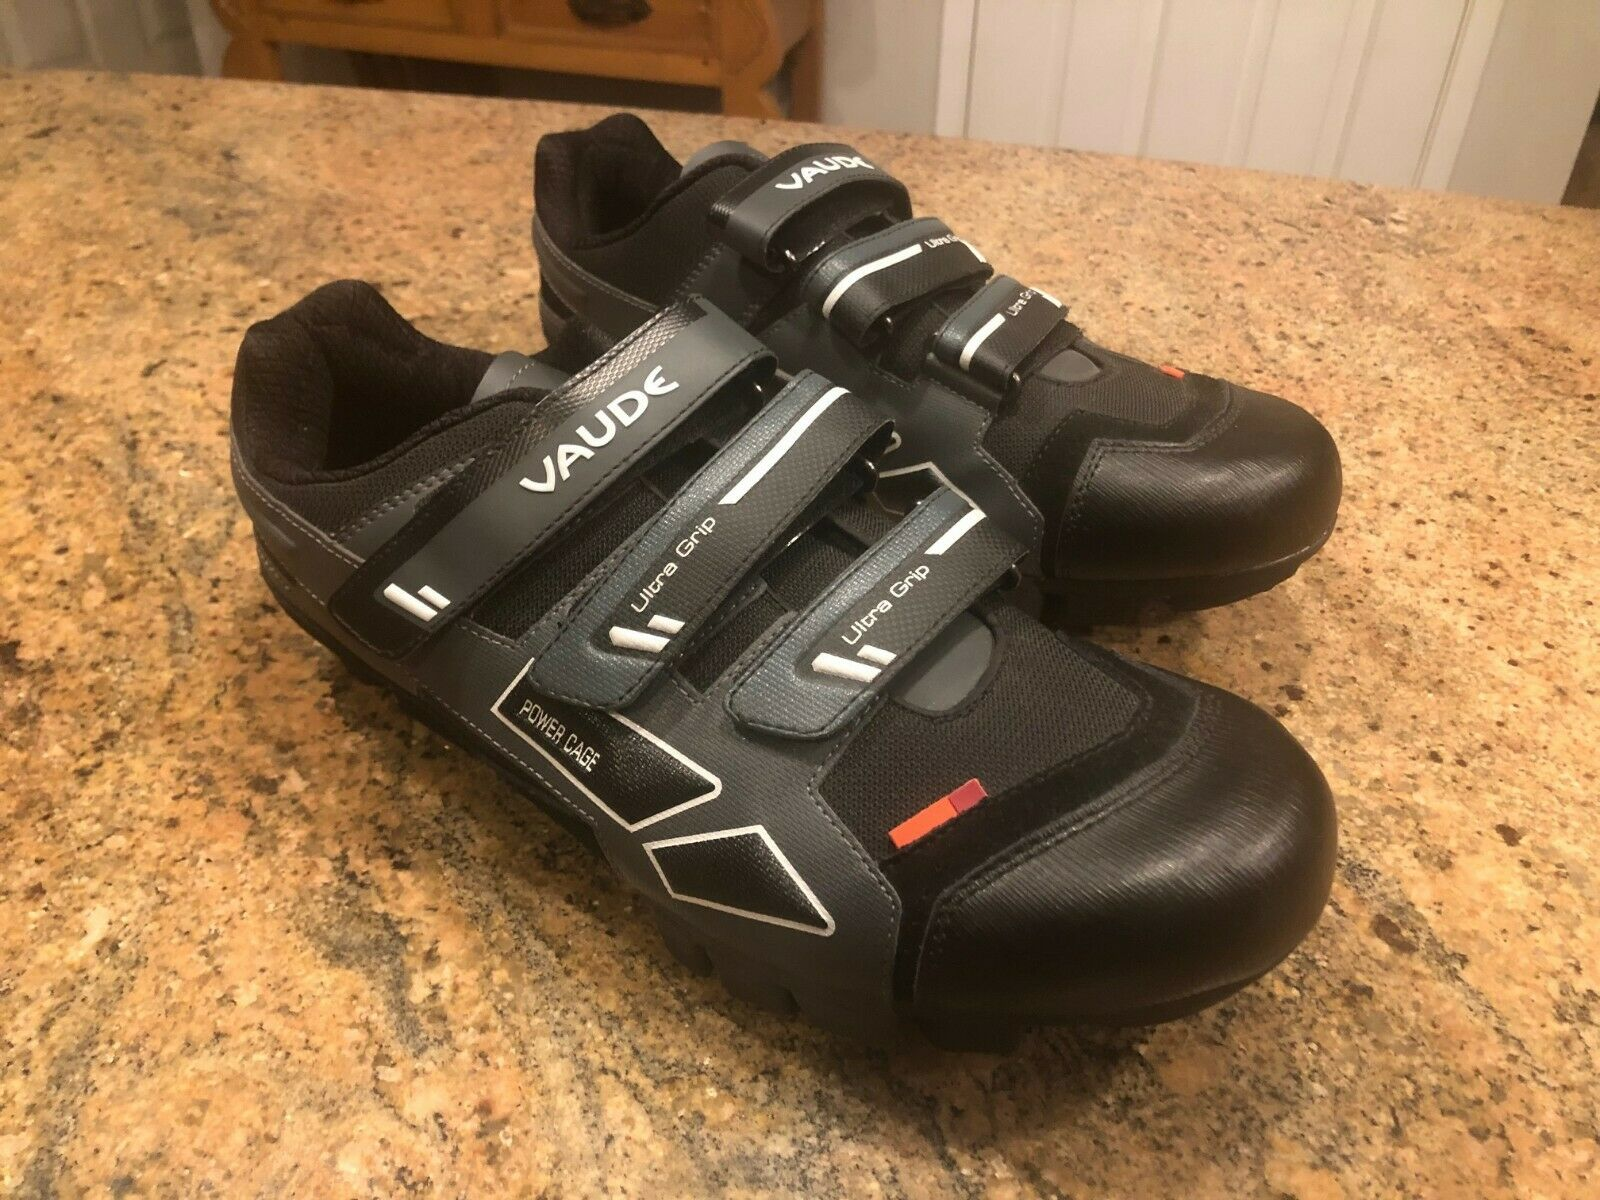 Vaude Basin RC Mountain bike Cycling shoes size 12 US  Waterproof  cheapest price